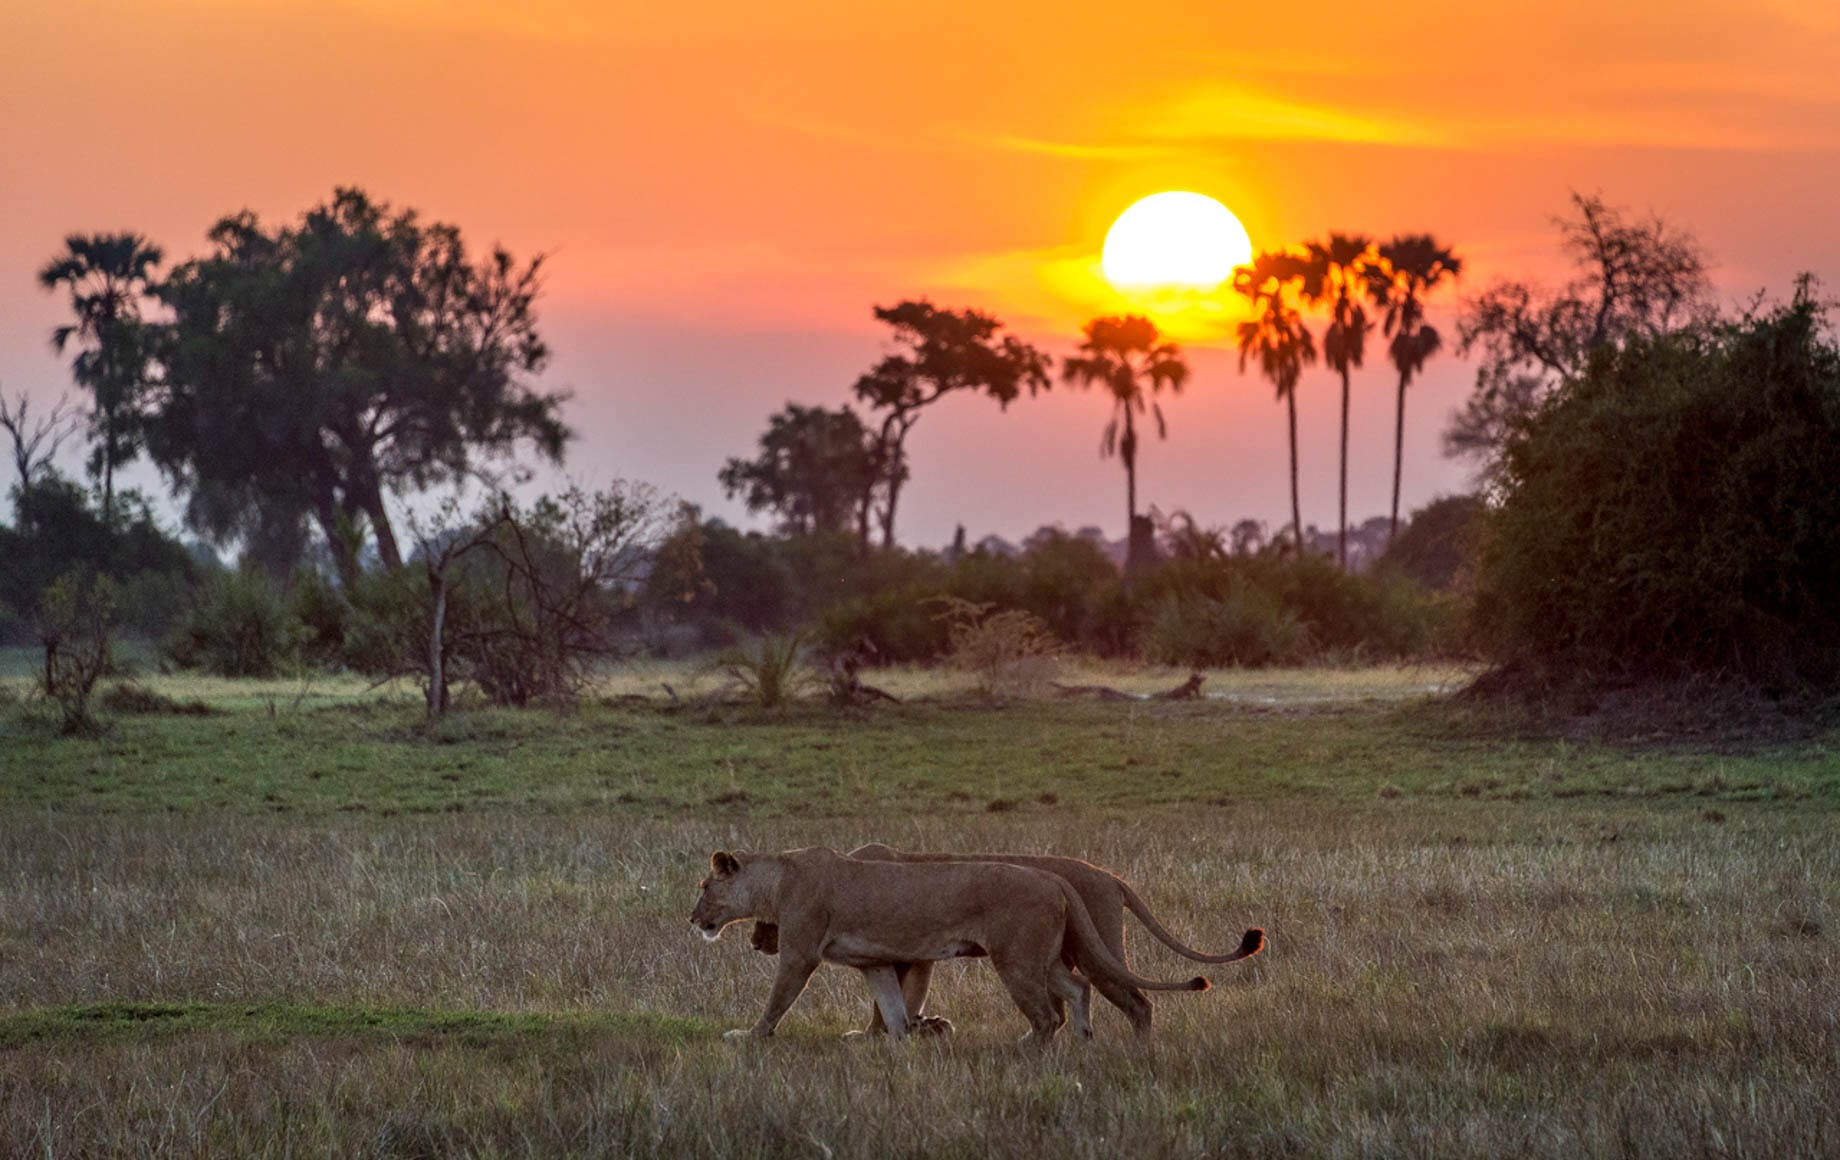 Lions roaming during sunset